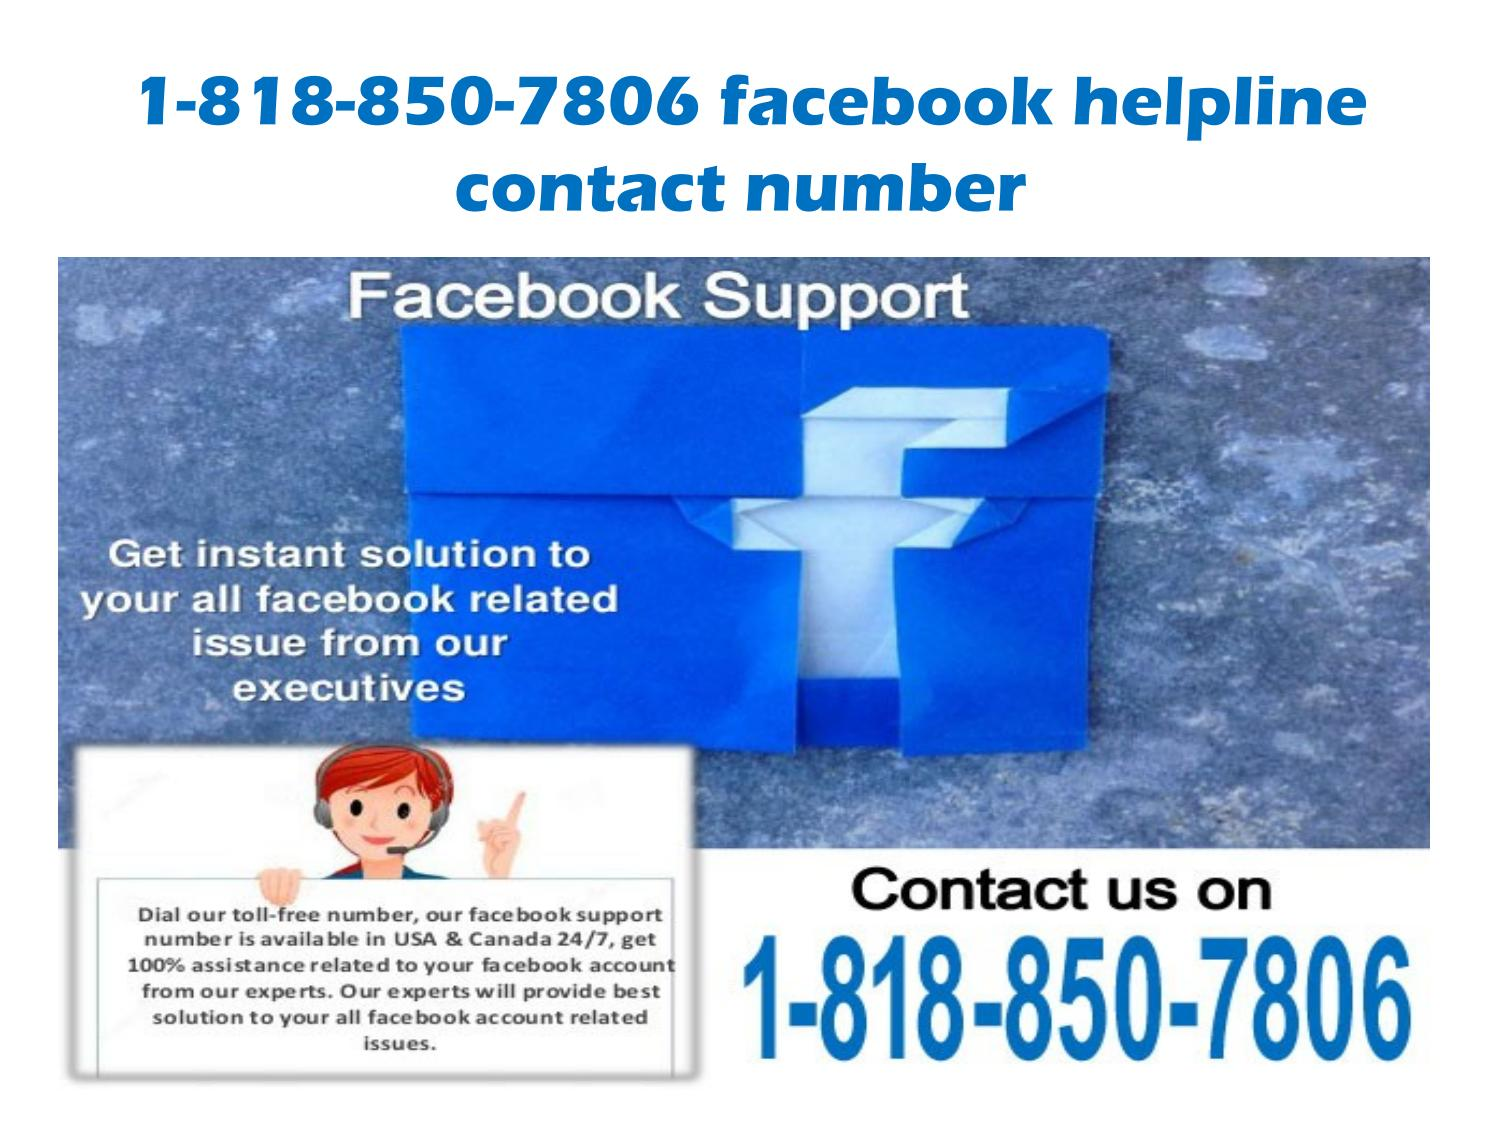 1-818-850-7806 facebook contact help line phone number by amelia